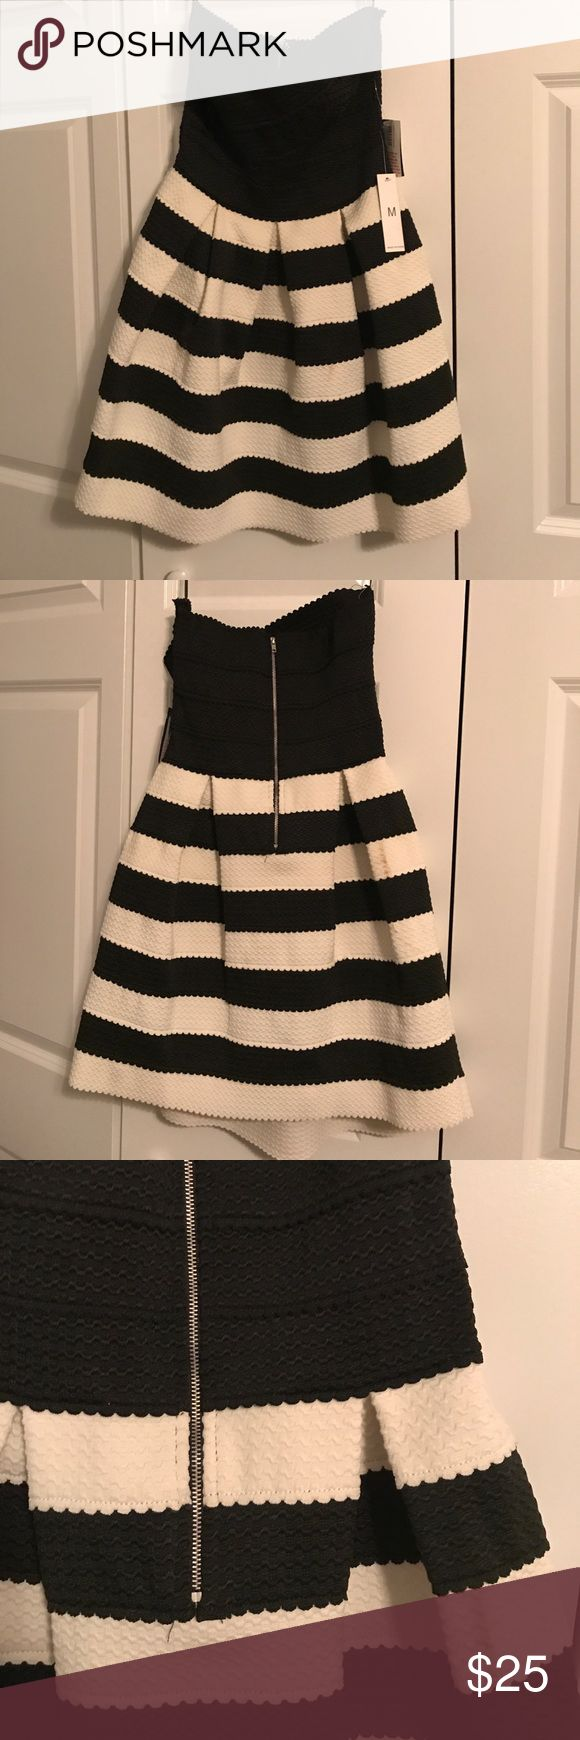 NWT black and white stripe strapless mini dress Black and white strapless mini dress. Exposed back zip. Very stretchy. Would be great for a cocktail party or wedding guest Teeze Me Dresses Strapless